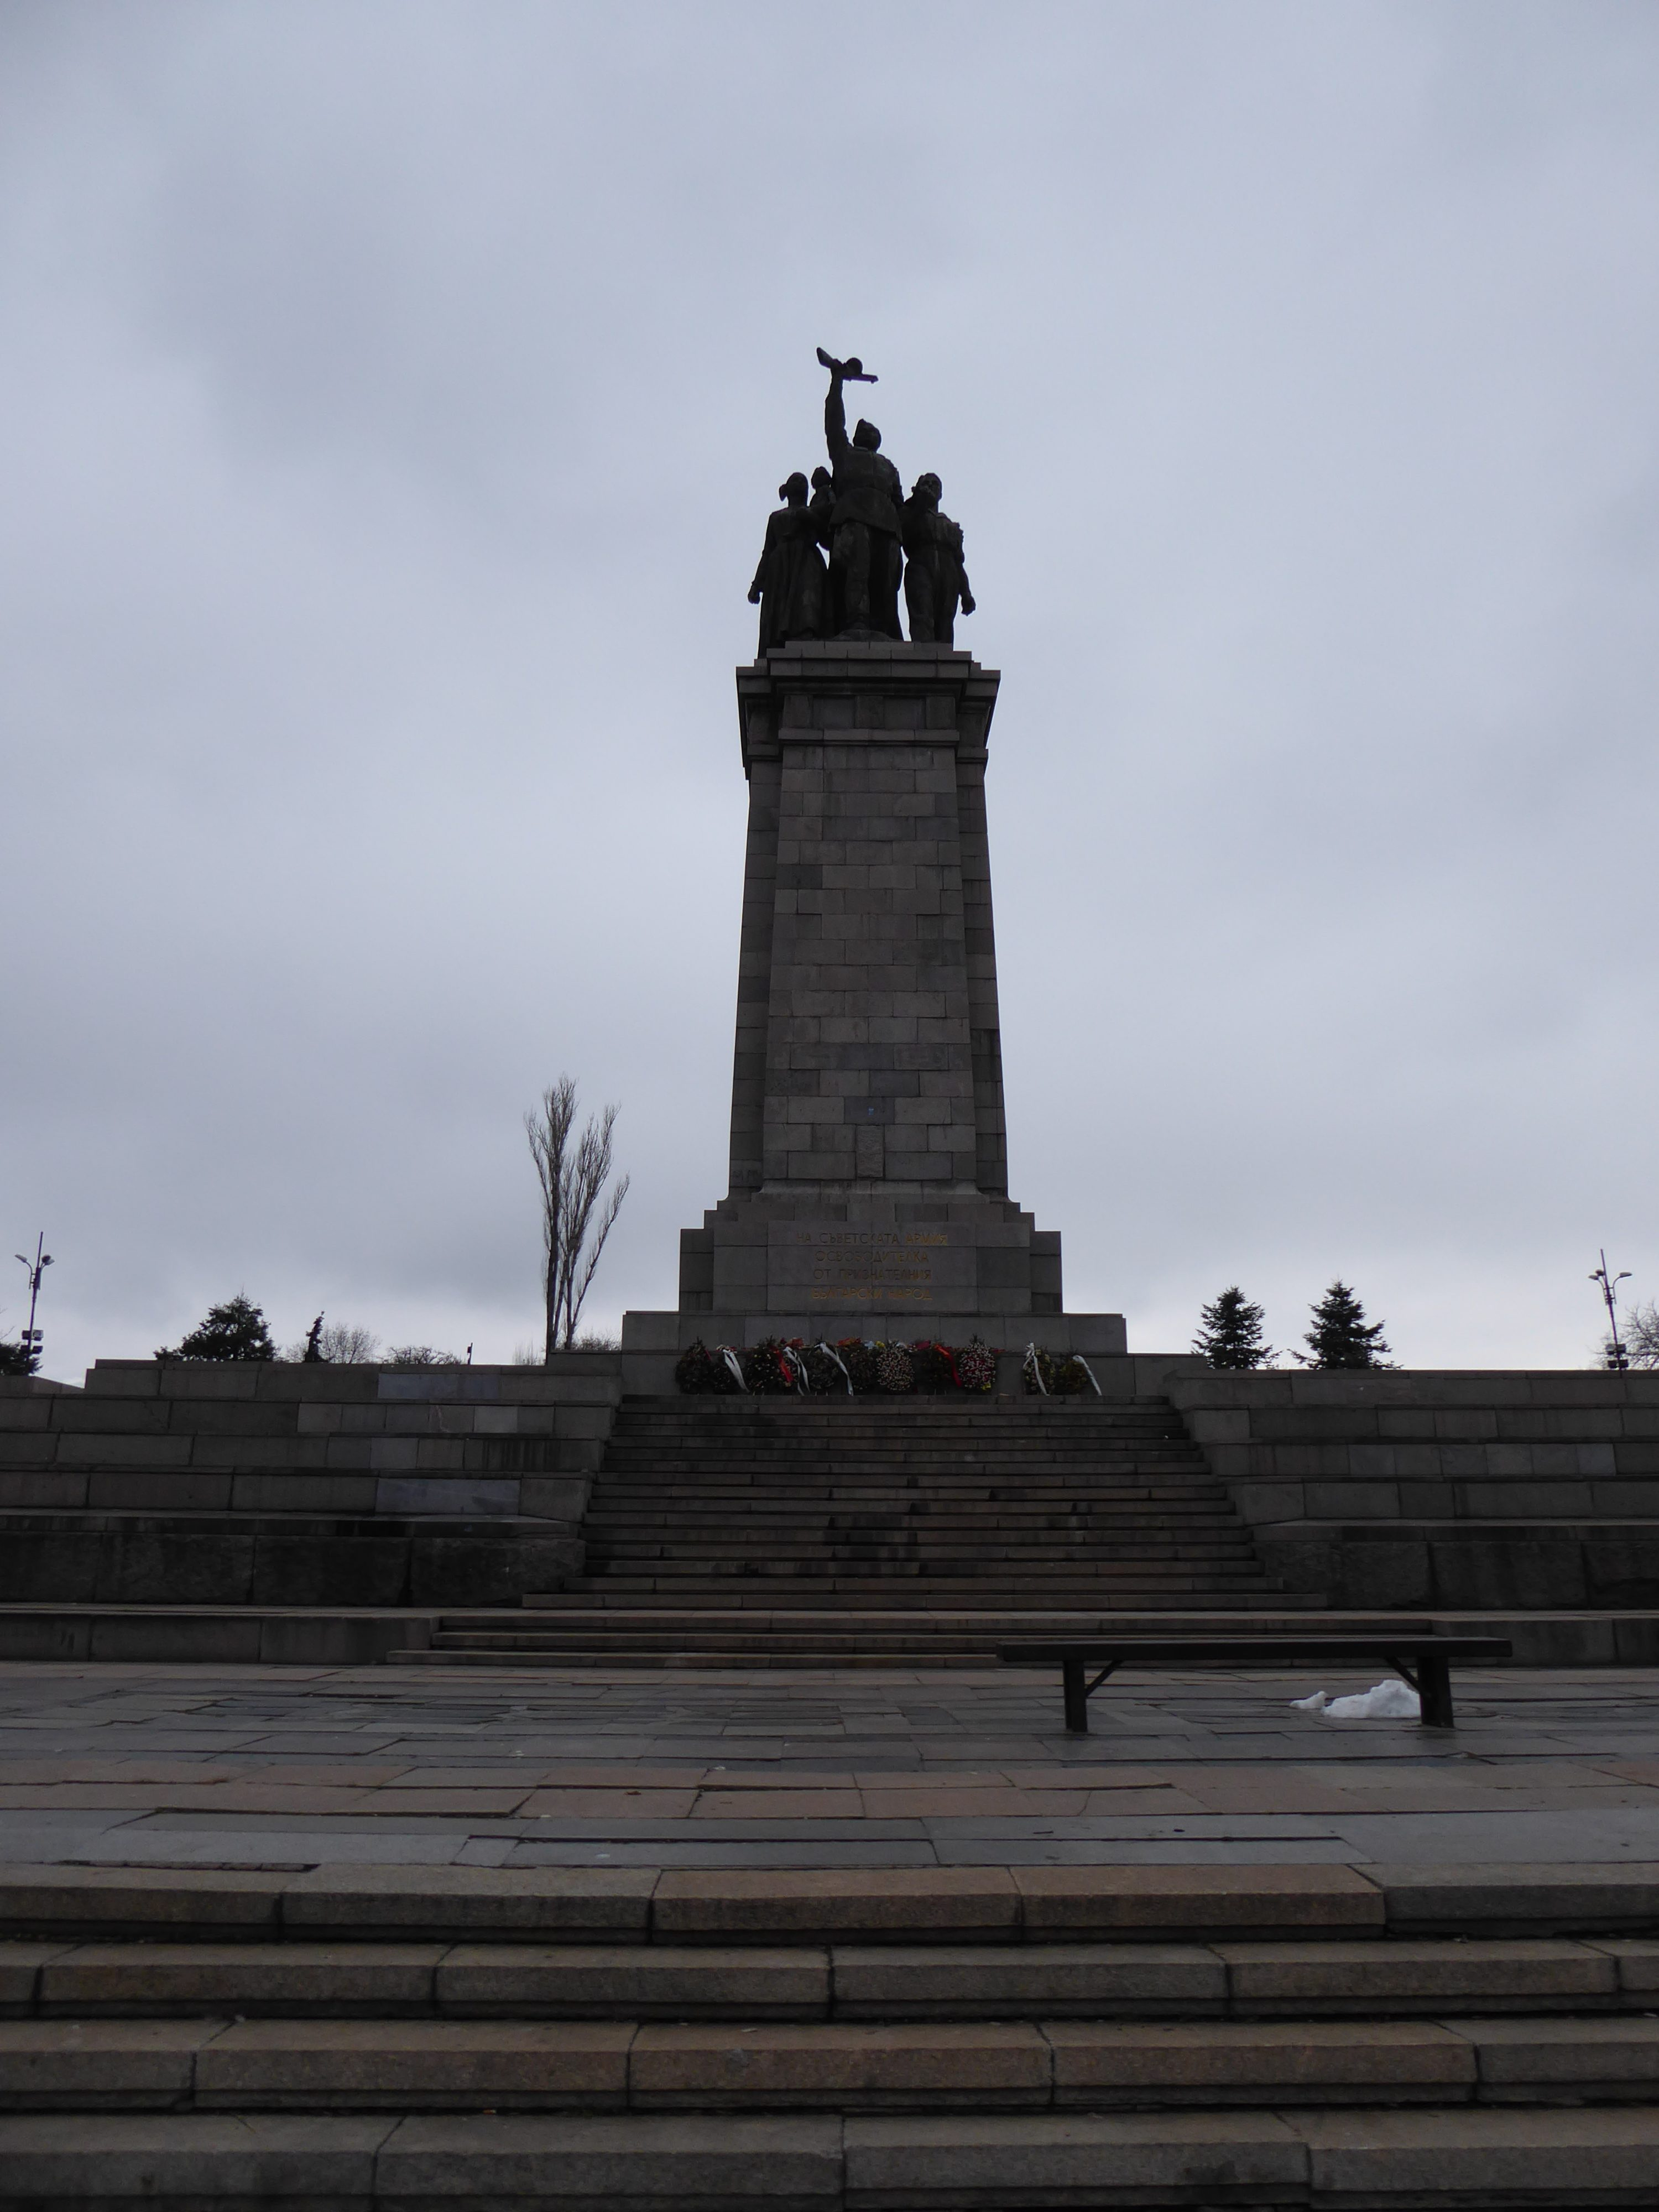 Part of the Monument to the Soviet Army in Sofia - tall pillar with statue on top